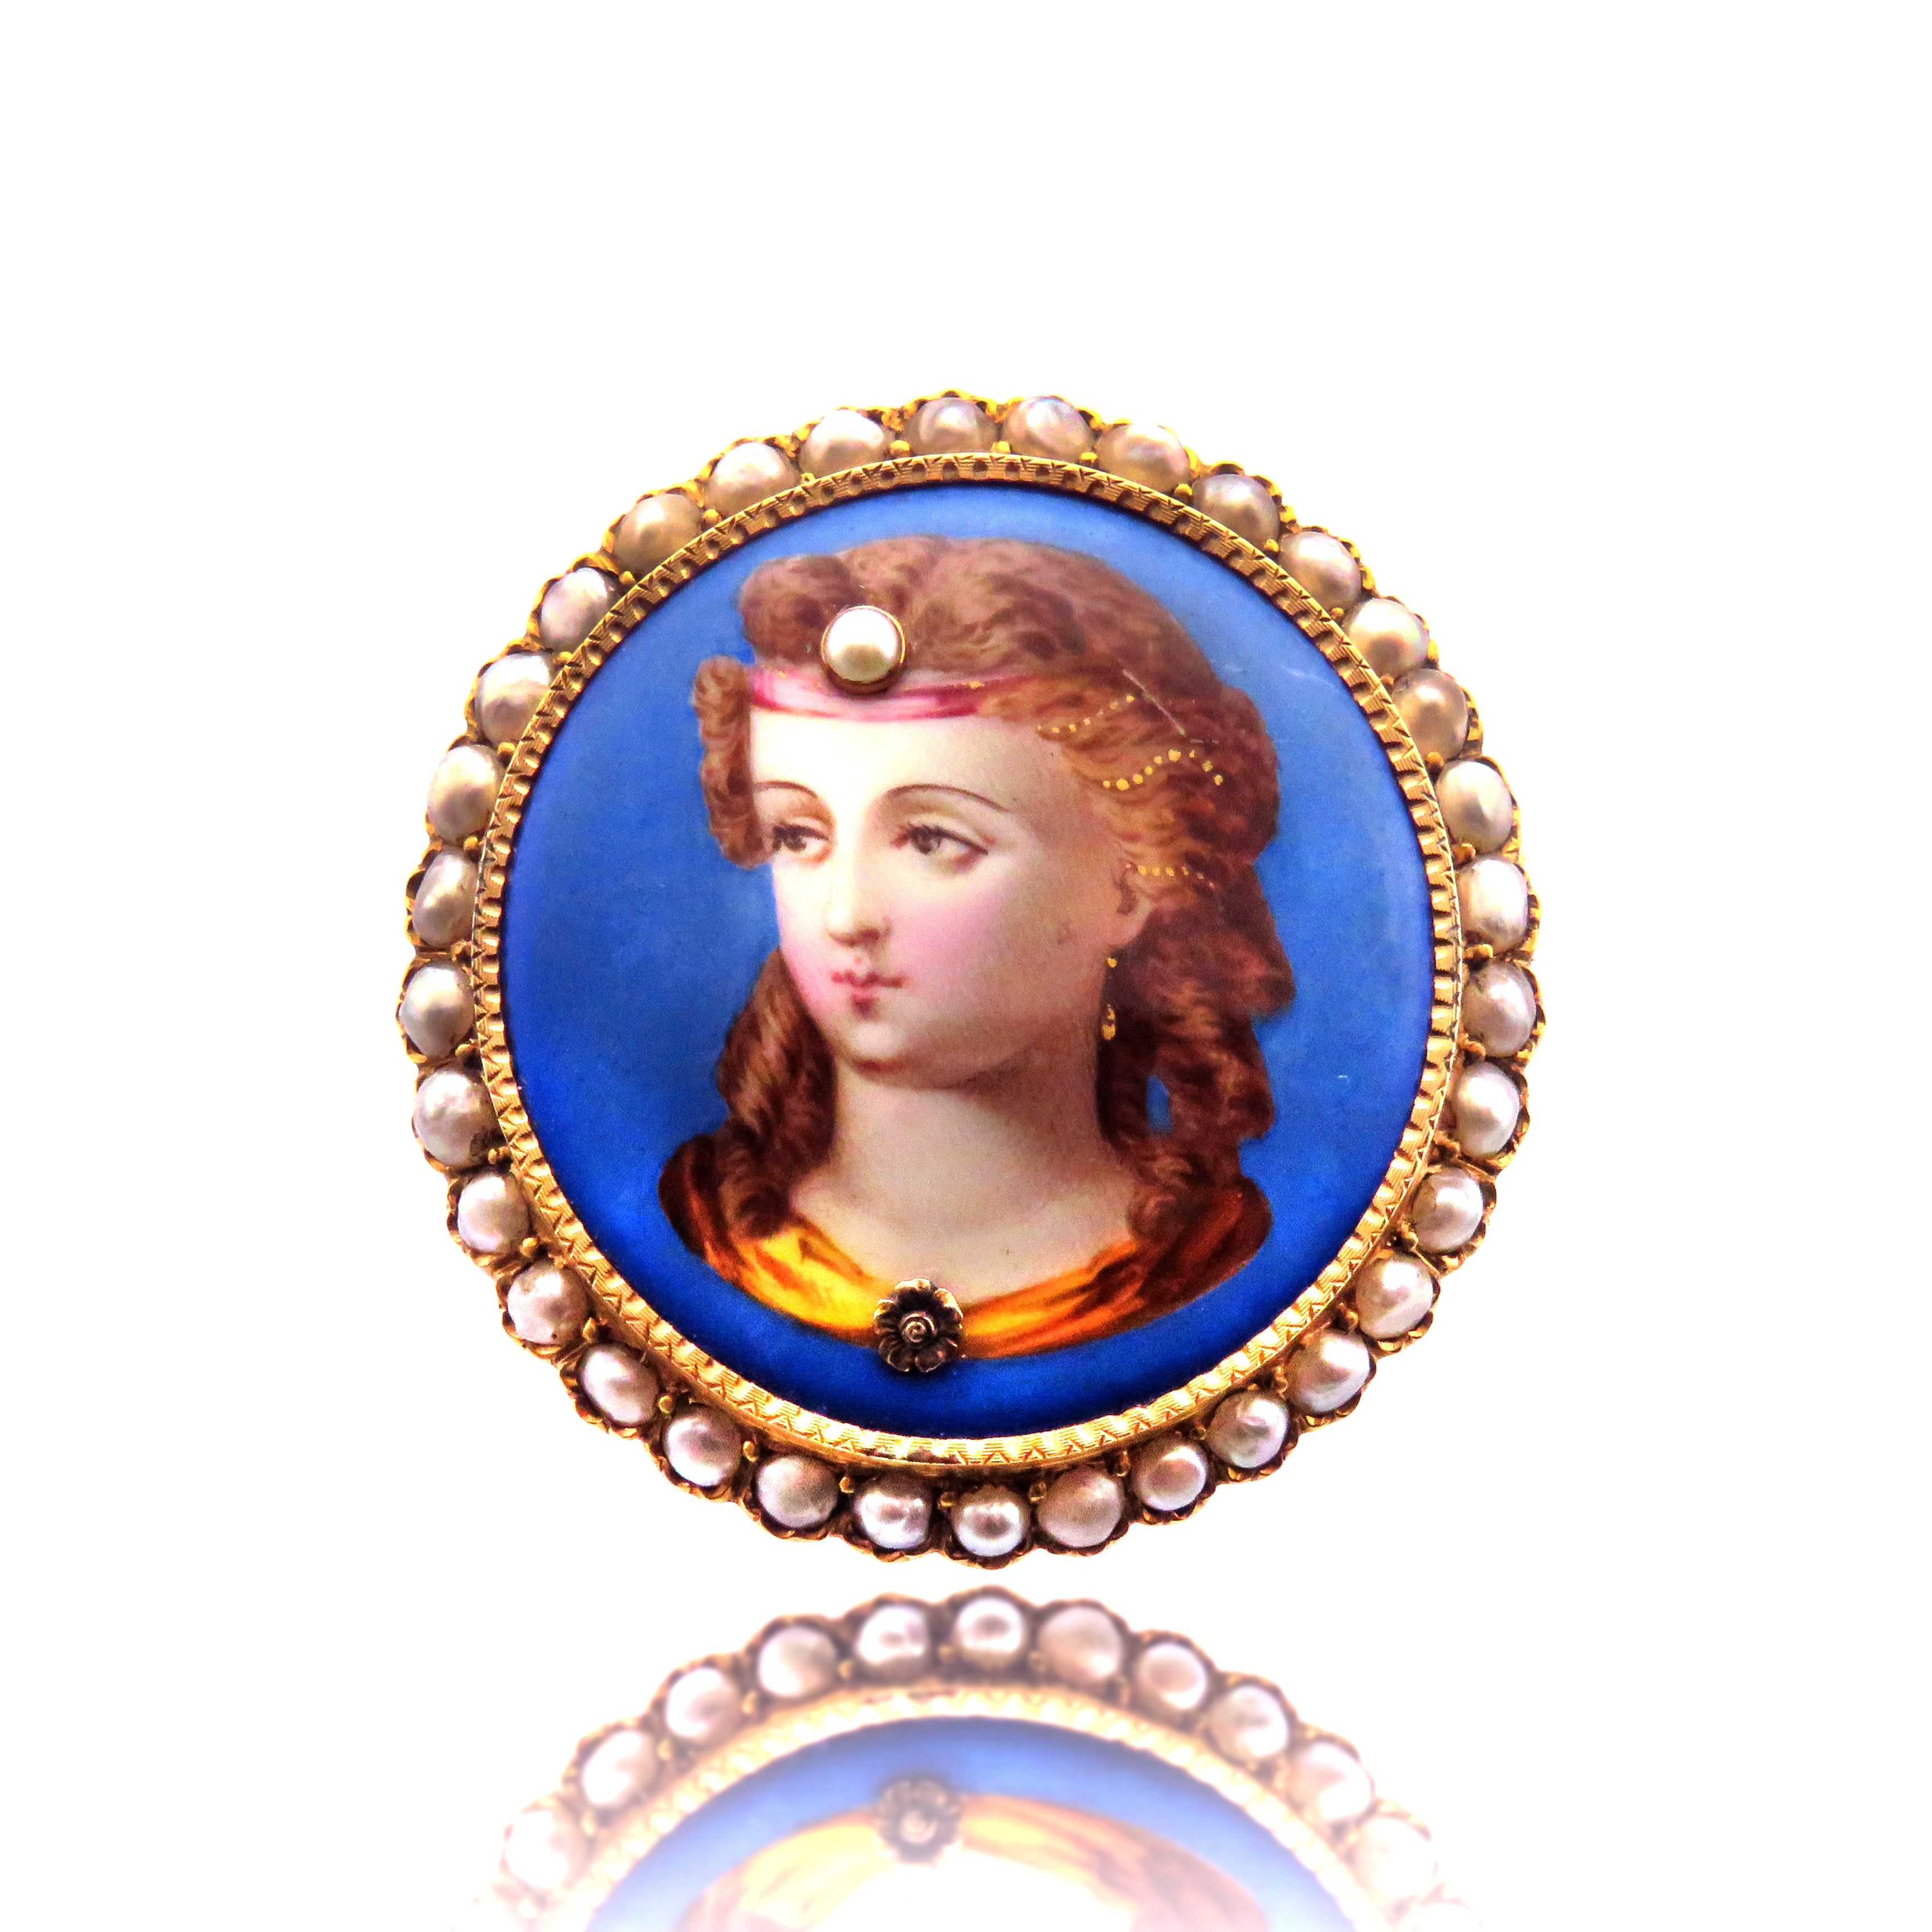 Mother of Pearl Painted Enamel Lady Brooch 18k Gold